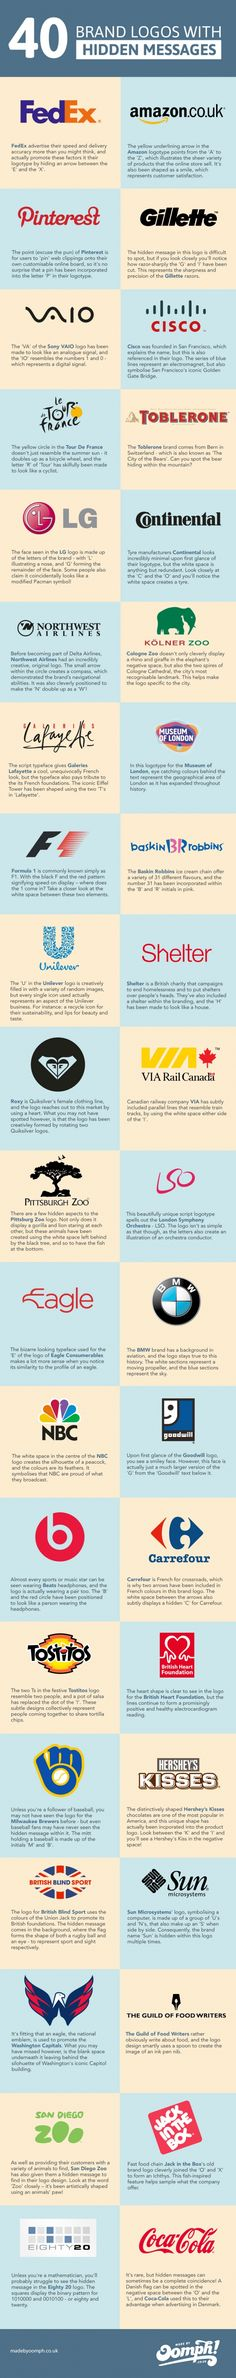 40 Logos With Hidden Messages. Changes the way you'll think about the company from now on!